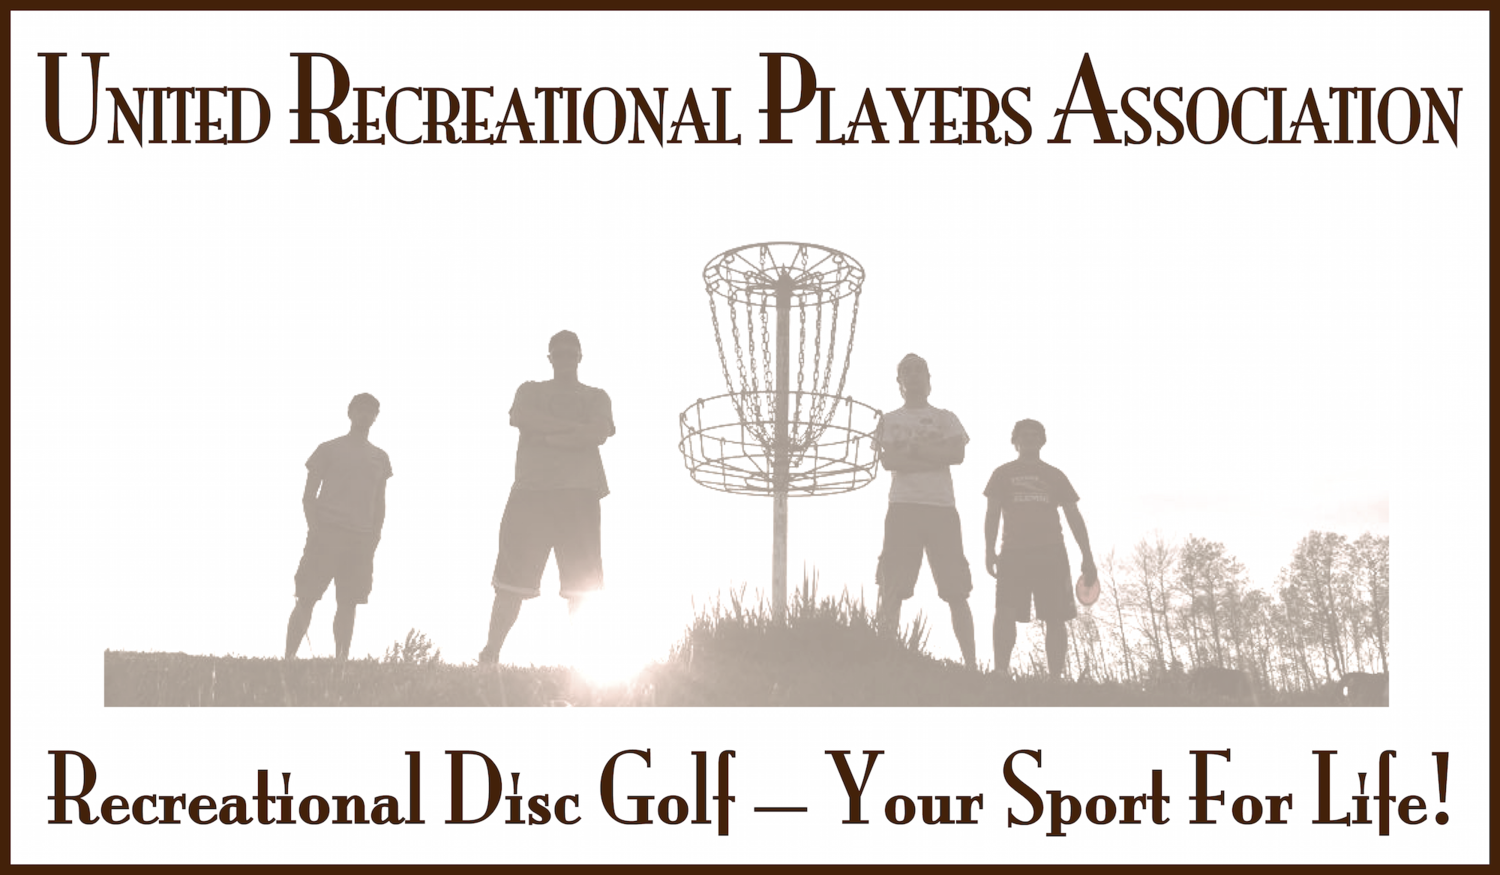 United Recreational Players Association